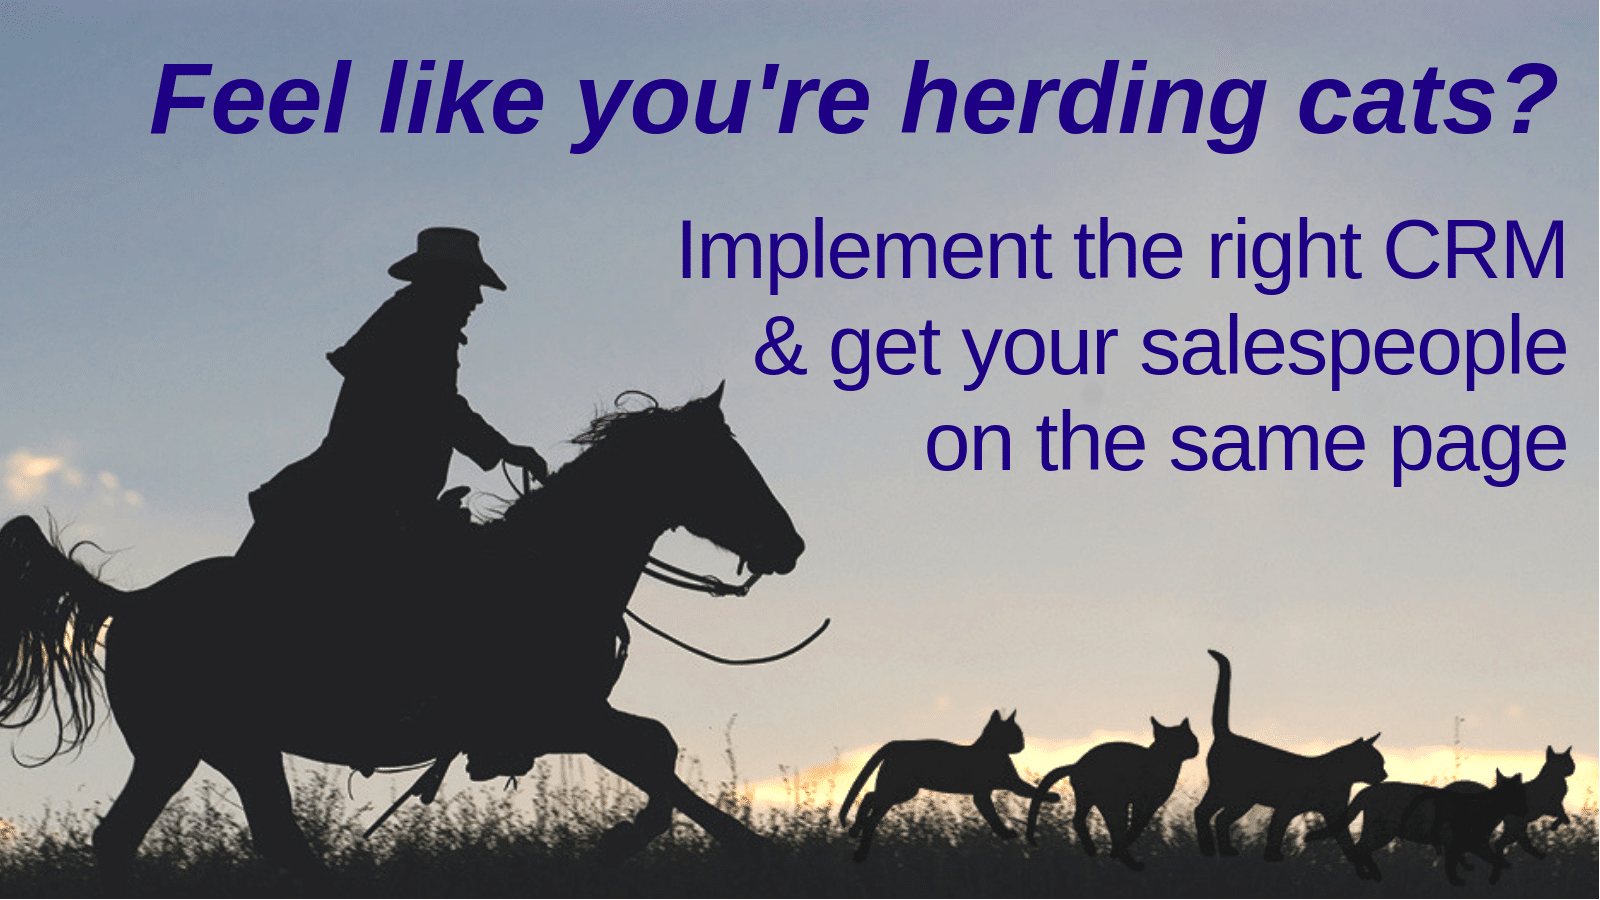 Feel like you're herding cats? Implement the right CRM and get your sales team on the same page